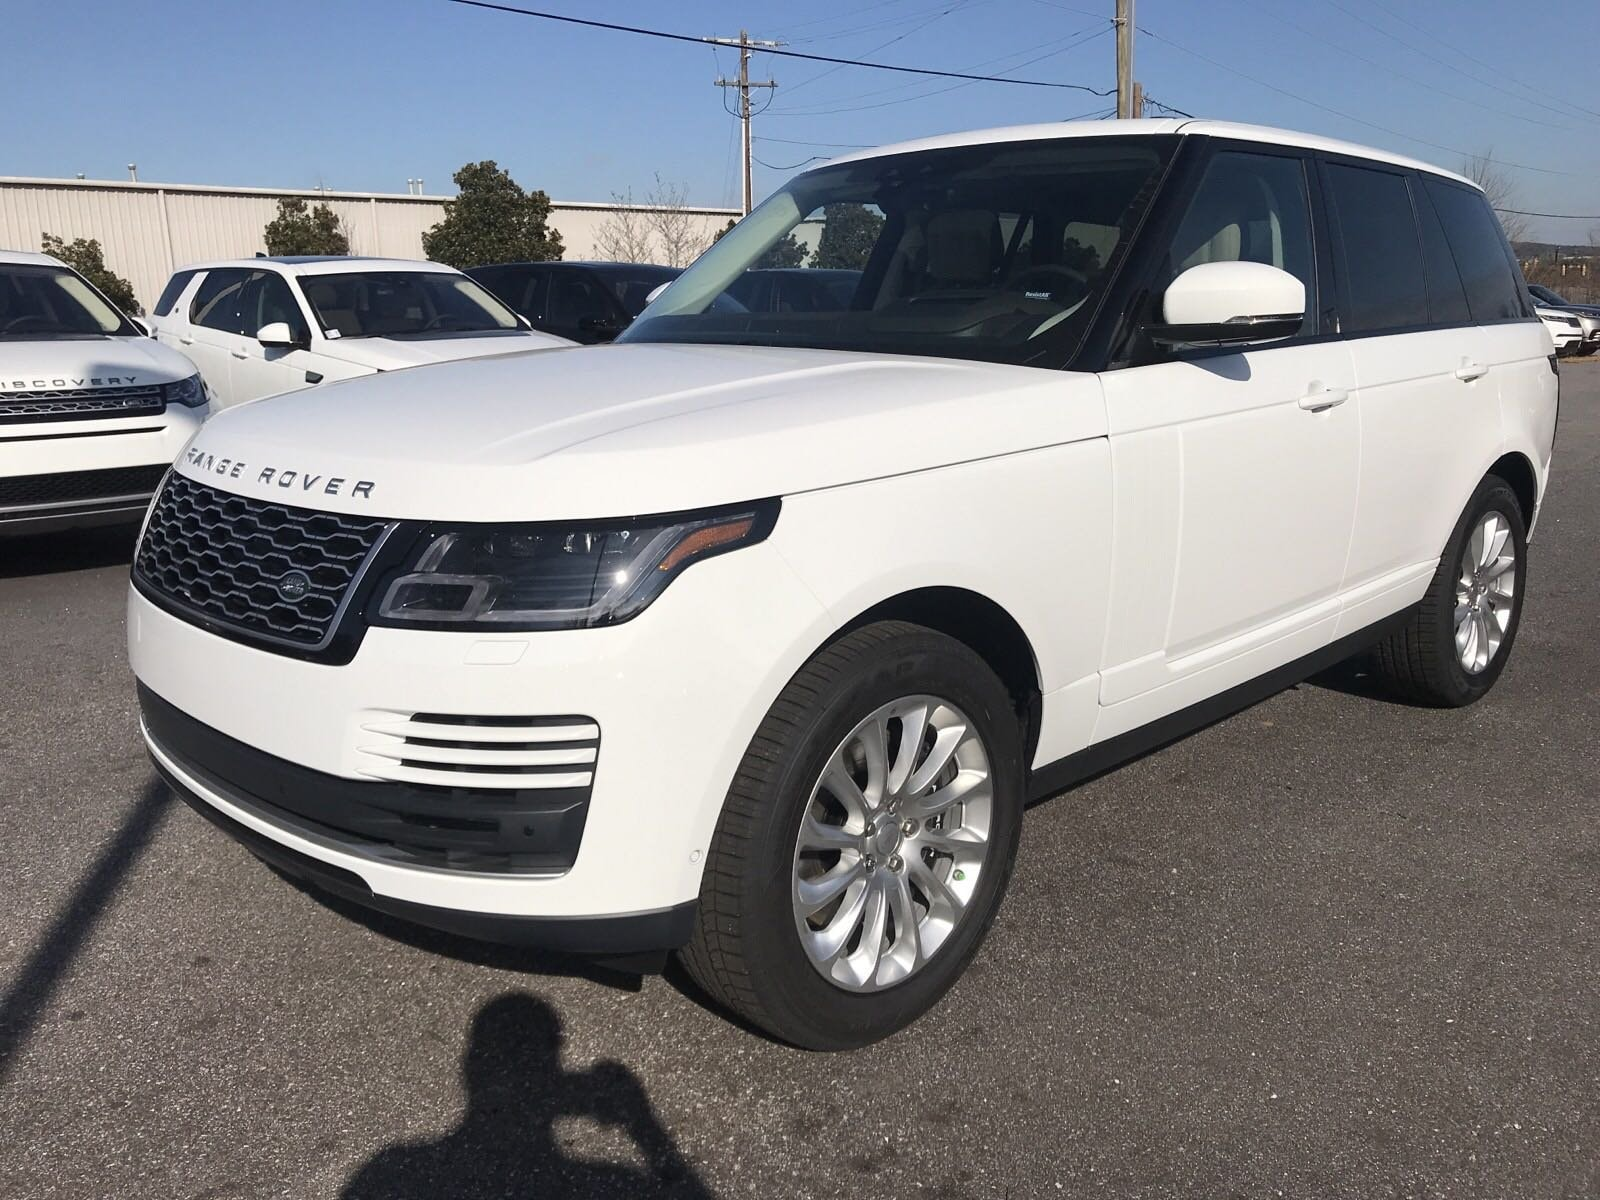 2019 Range Rover HSE V6 Supercharged | Greenville SC Labor Day Sales Event